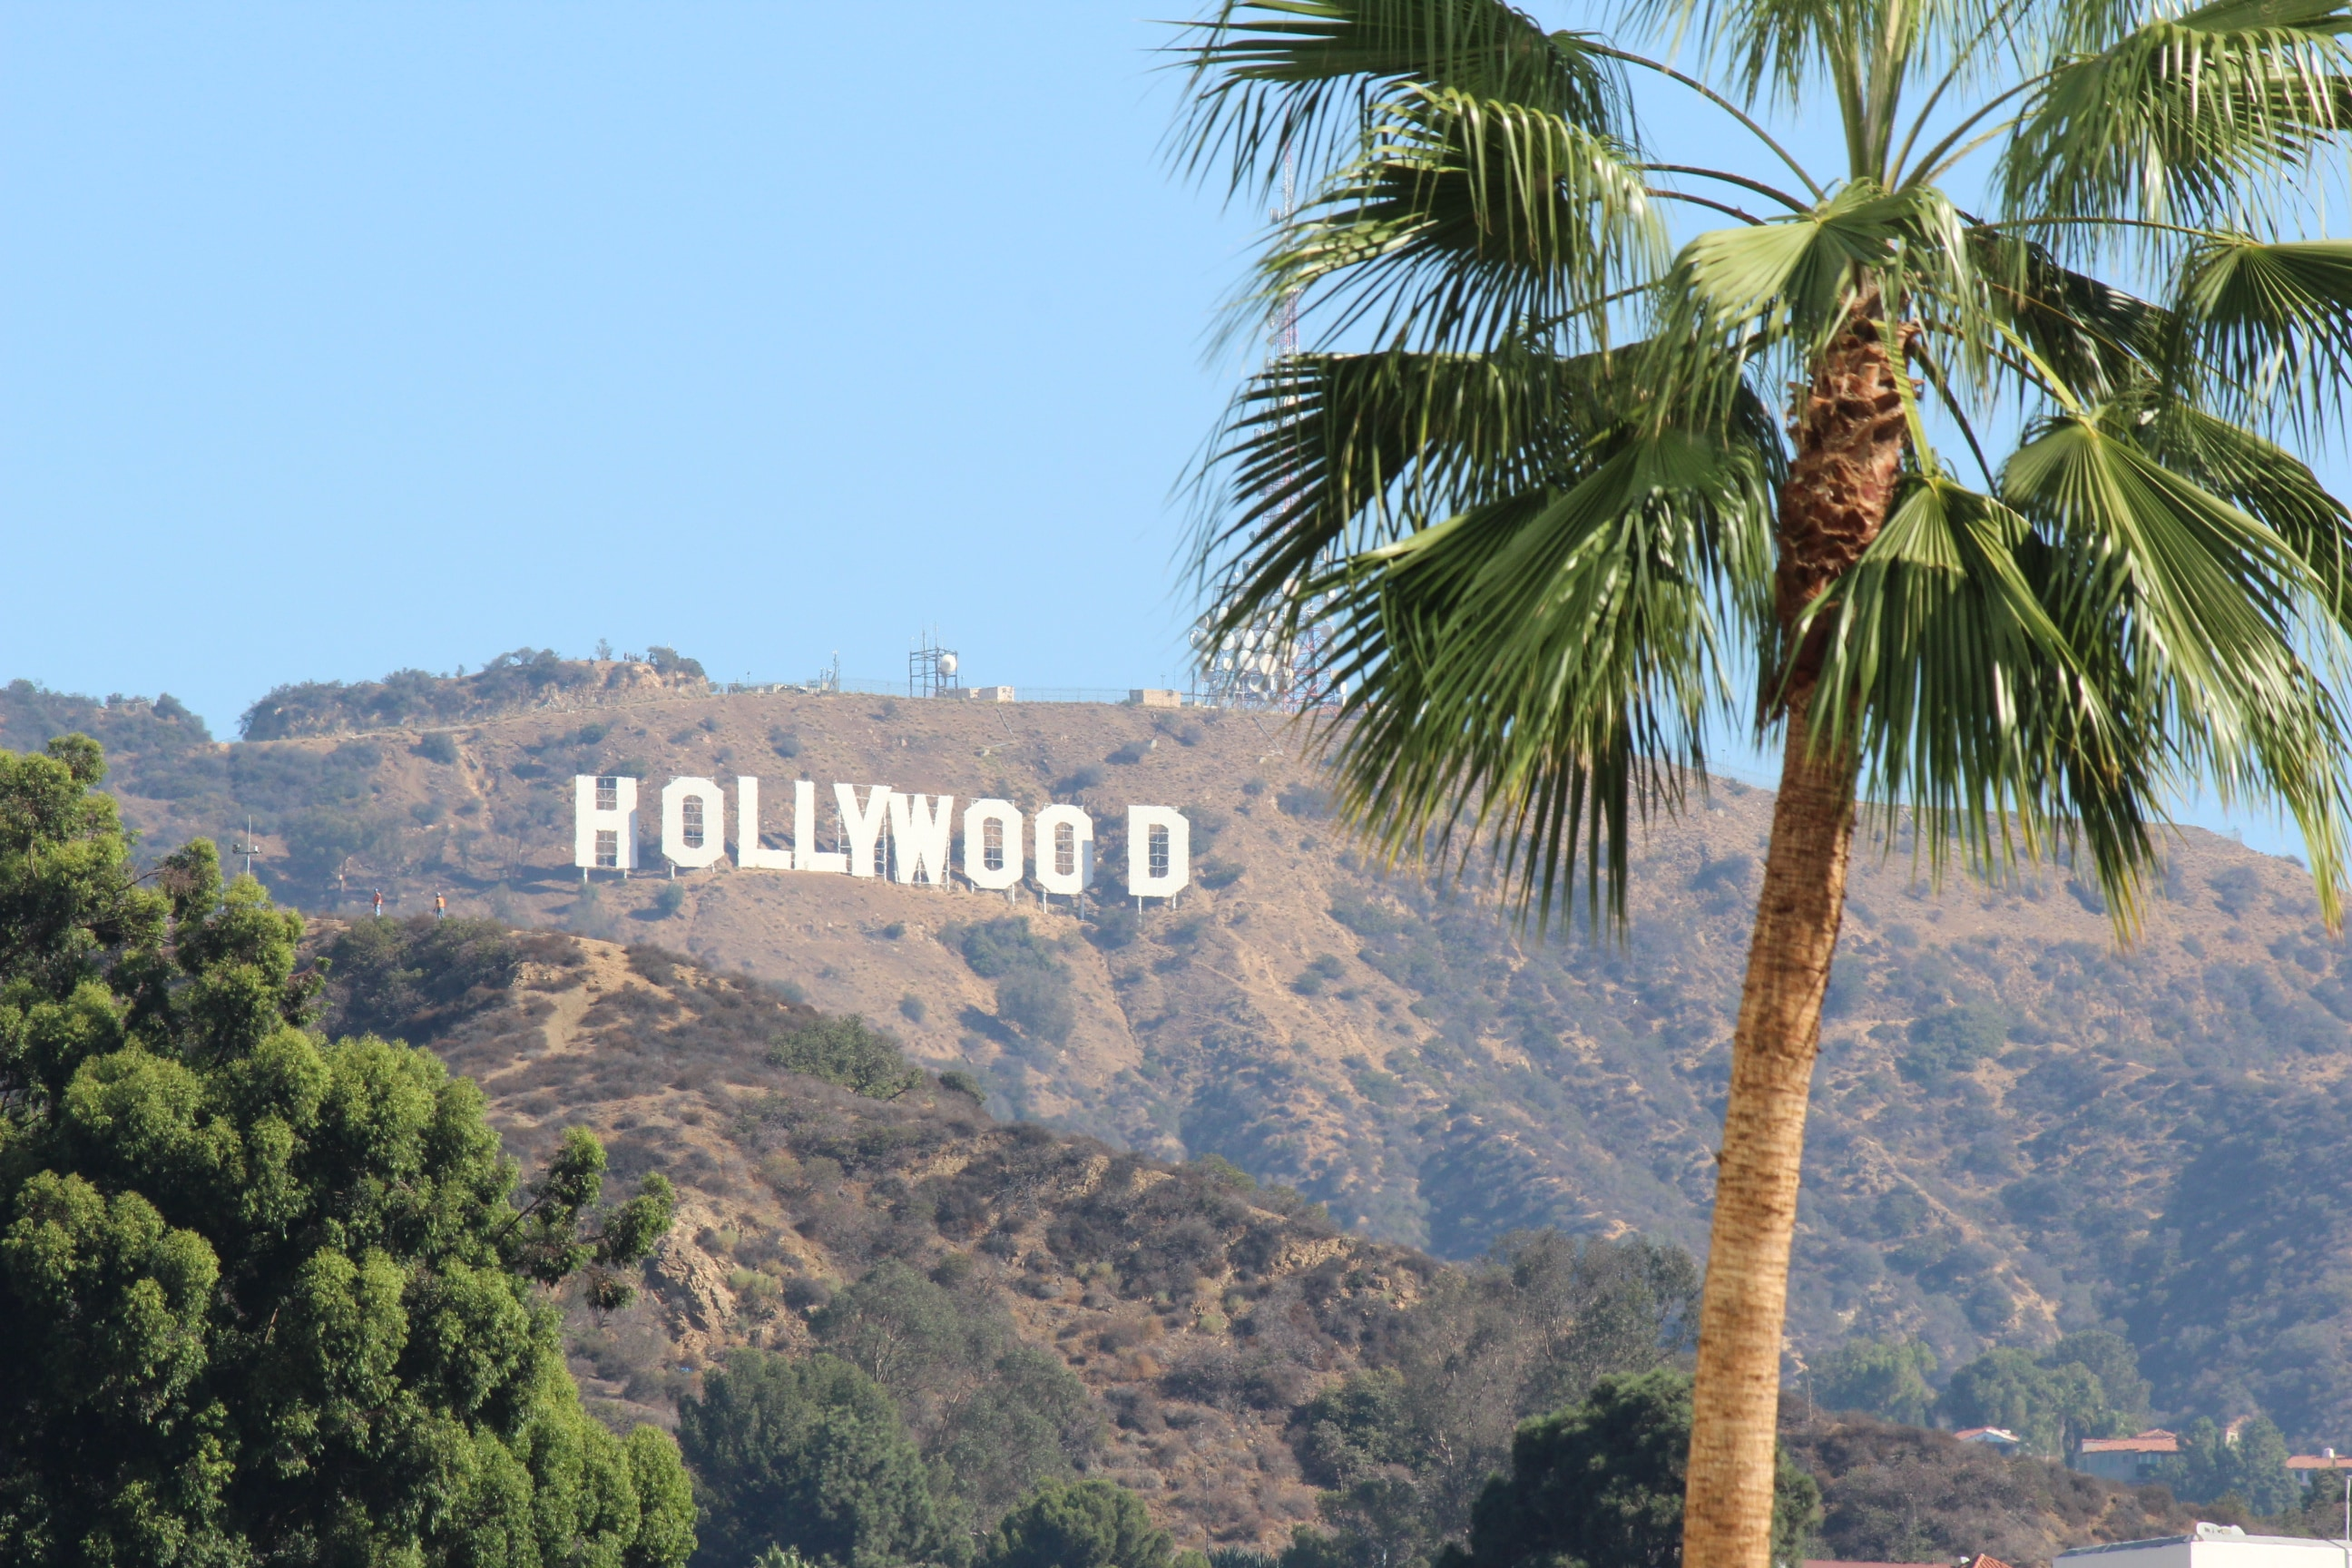 View of Hollywood sign from across